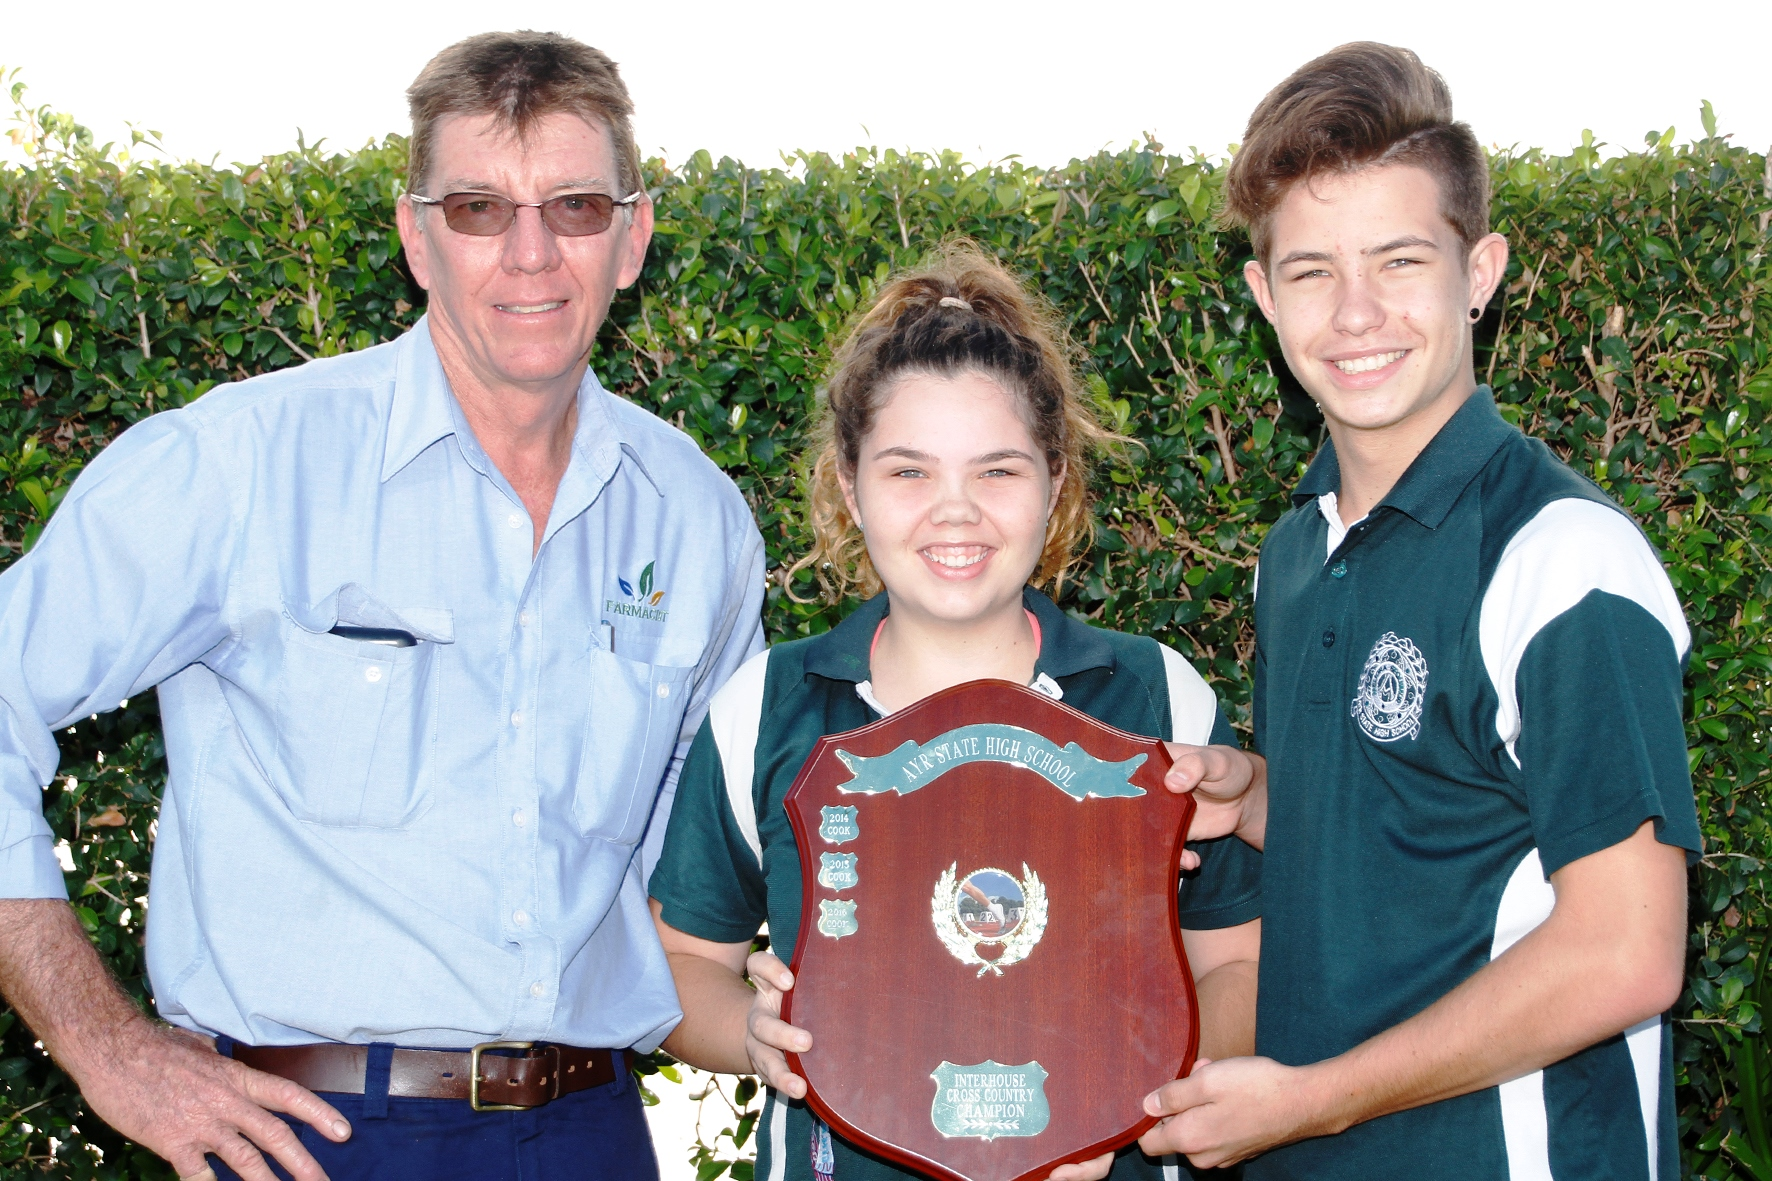 MACQUARIE Surprises all to Win Interhouse Cross Country & Fun Run